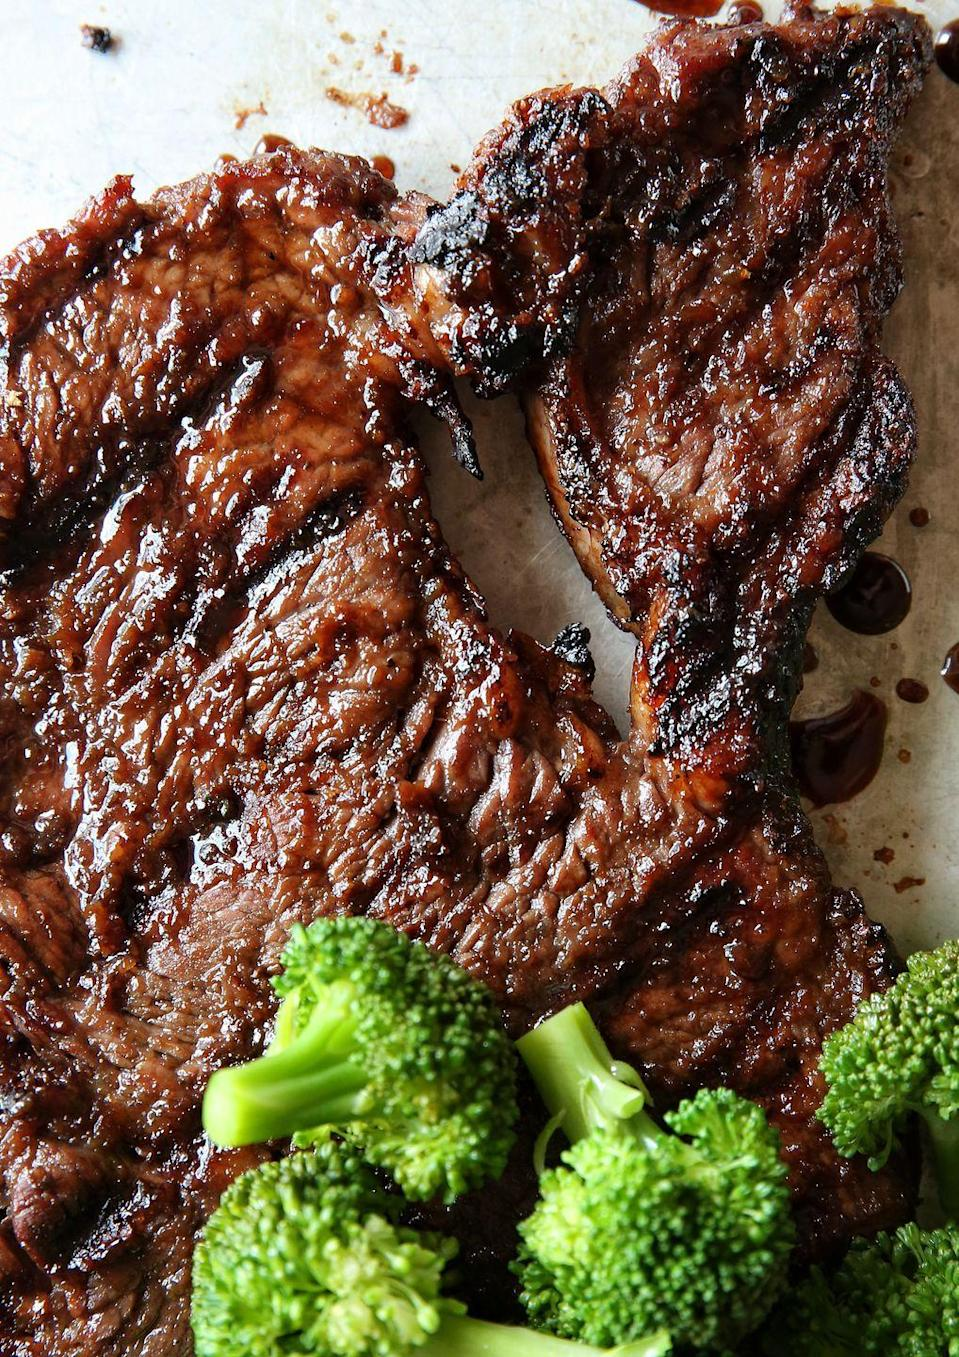 "<p>We can't get enough of the sweet and crunchy outer crust on this juicy steak.</p><p>Get the recipe from <a href=""https://www.delish.com/cooking/recipe-ideas/recipes/a48915/mongolian-glazed-steak-with-broccoli-recipe/"" rel=""nofollow noopener"" target=""_blank"" data-ylk=""slk:Delish"" class=""link rapid-noclick-resp"">Delish</a>.<br></p>"